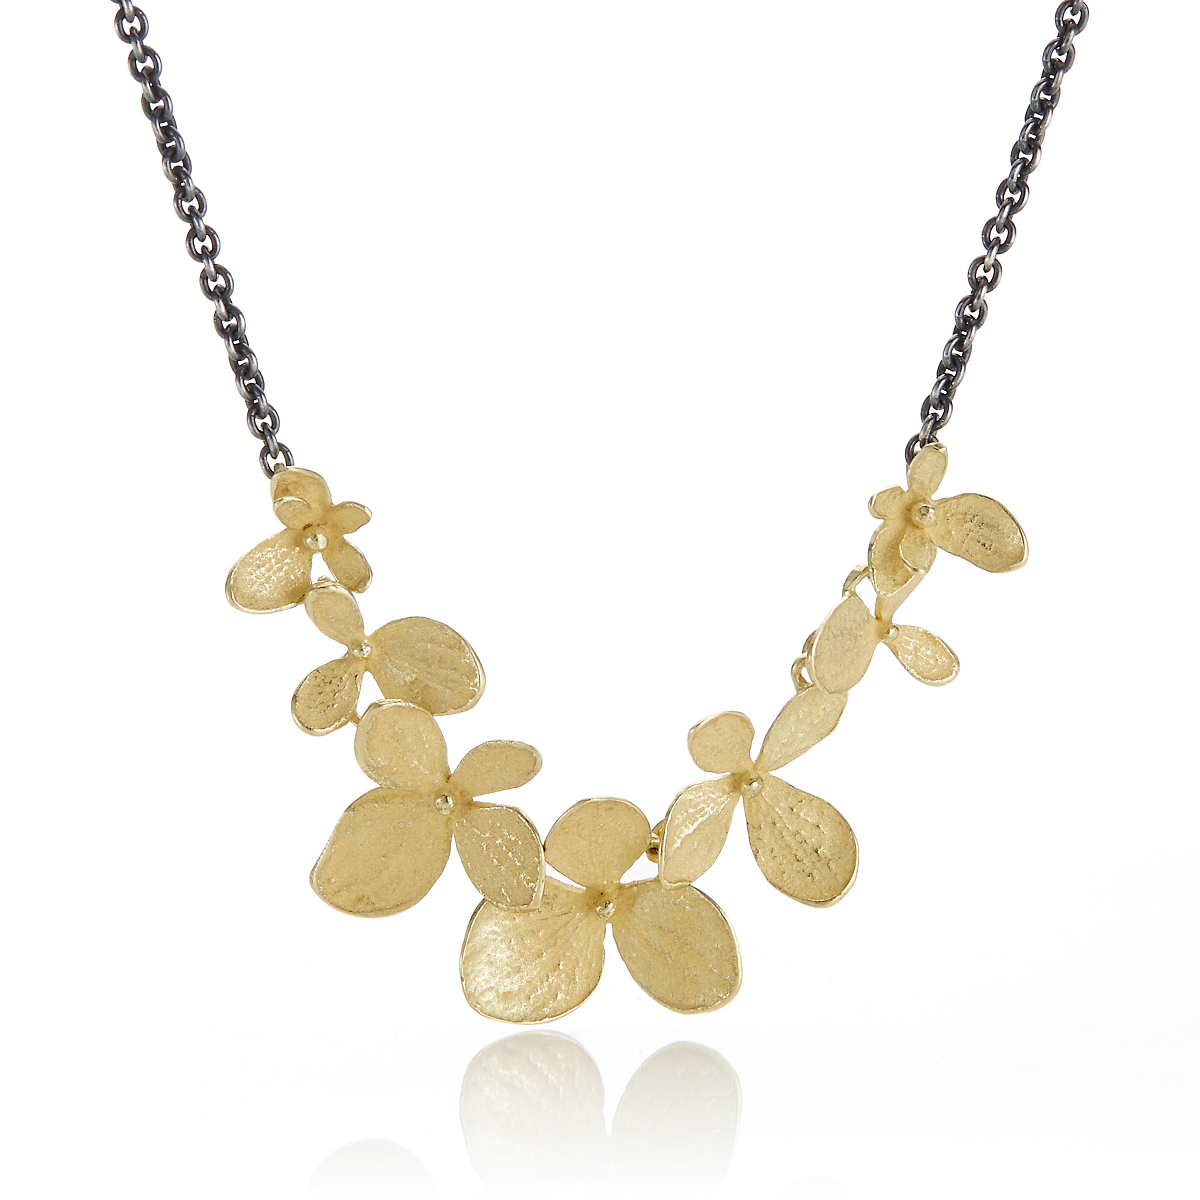 John Iversen Gold and Oxidized Sterling Silver Multi Hydrangea Necklace